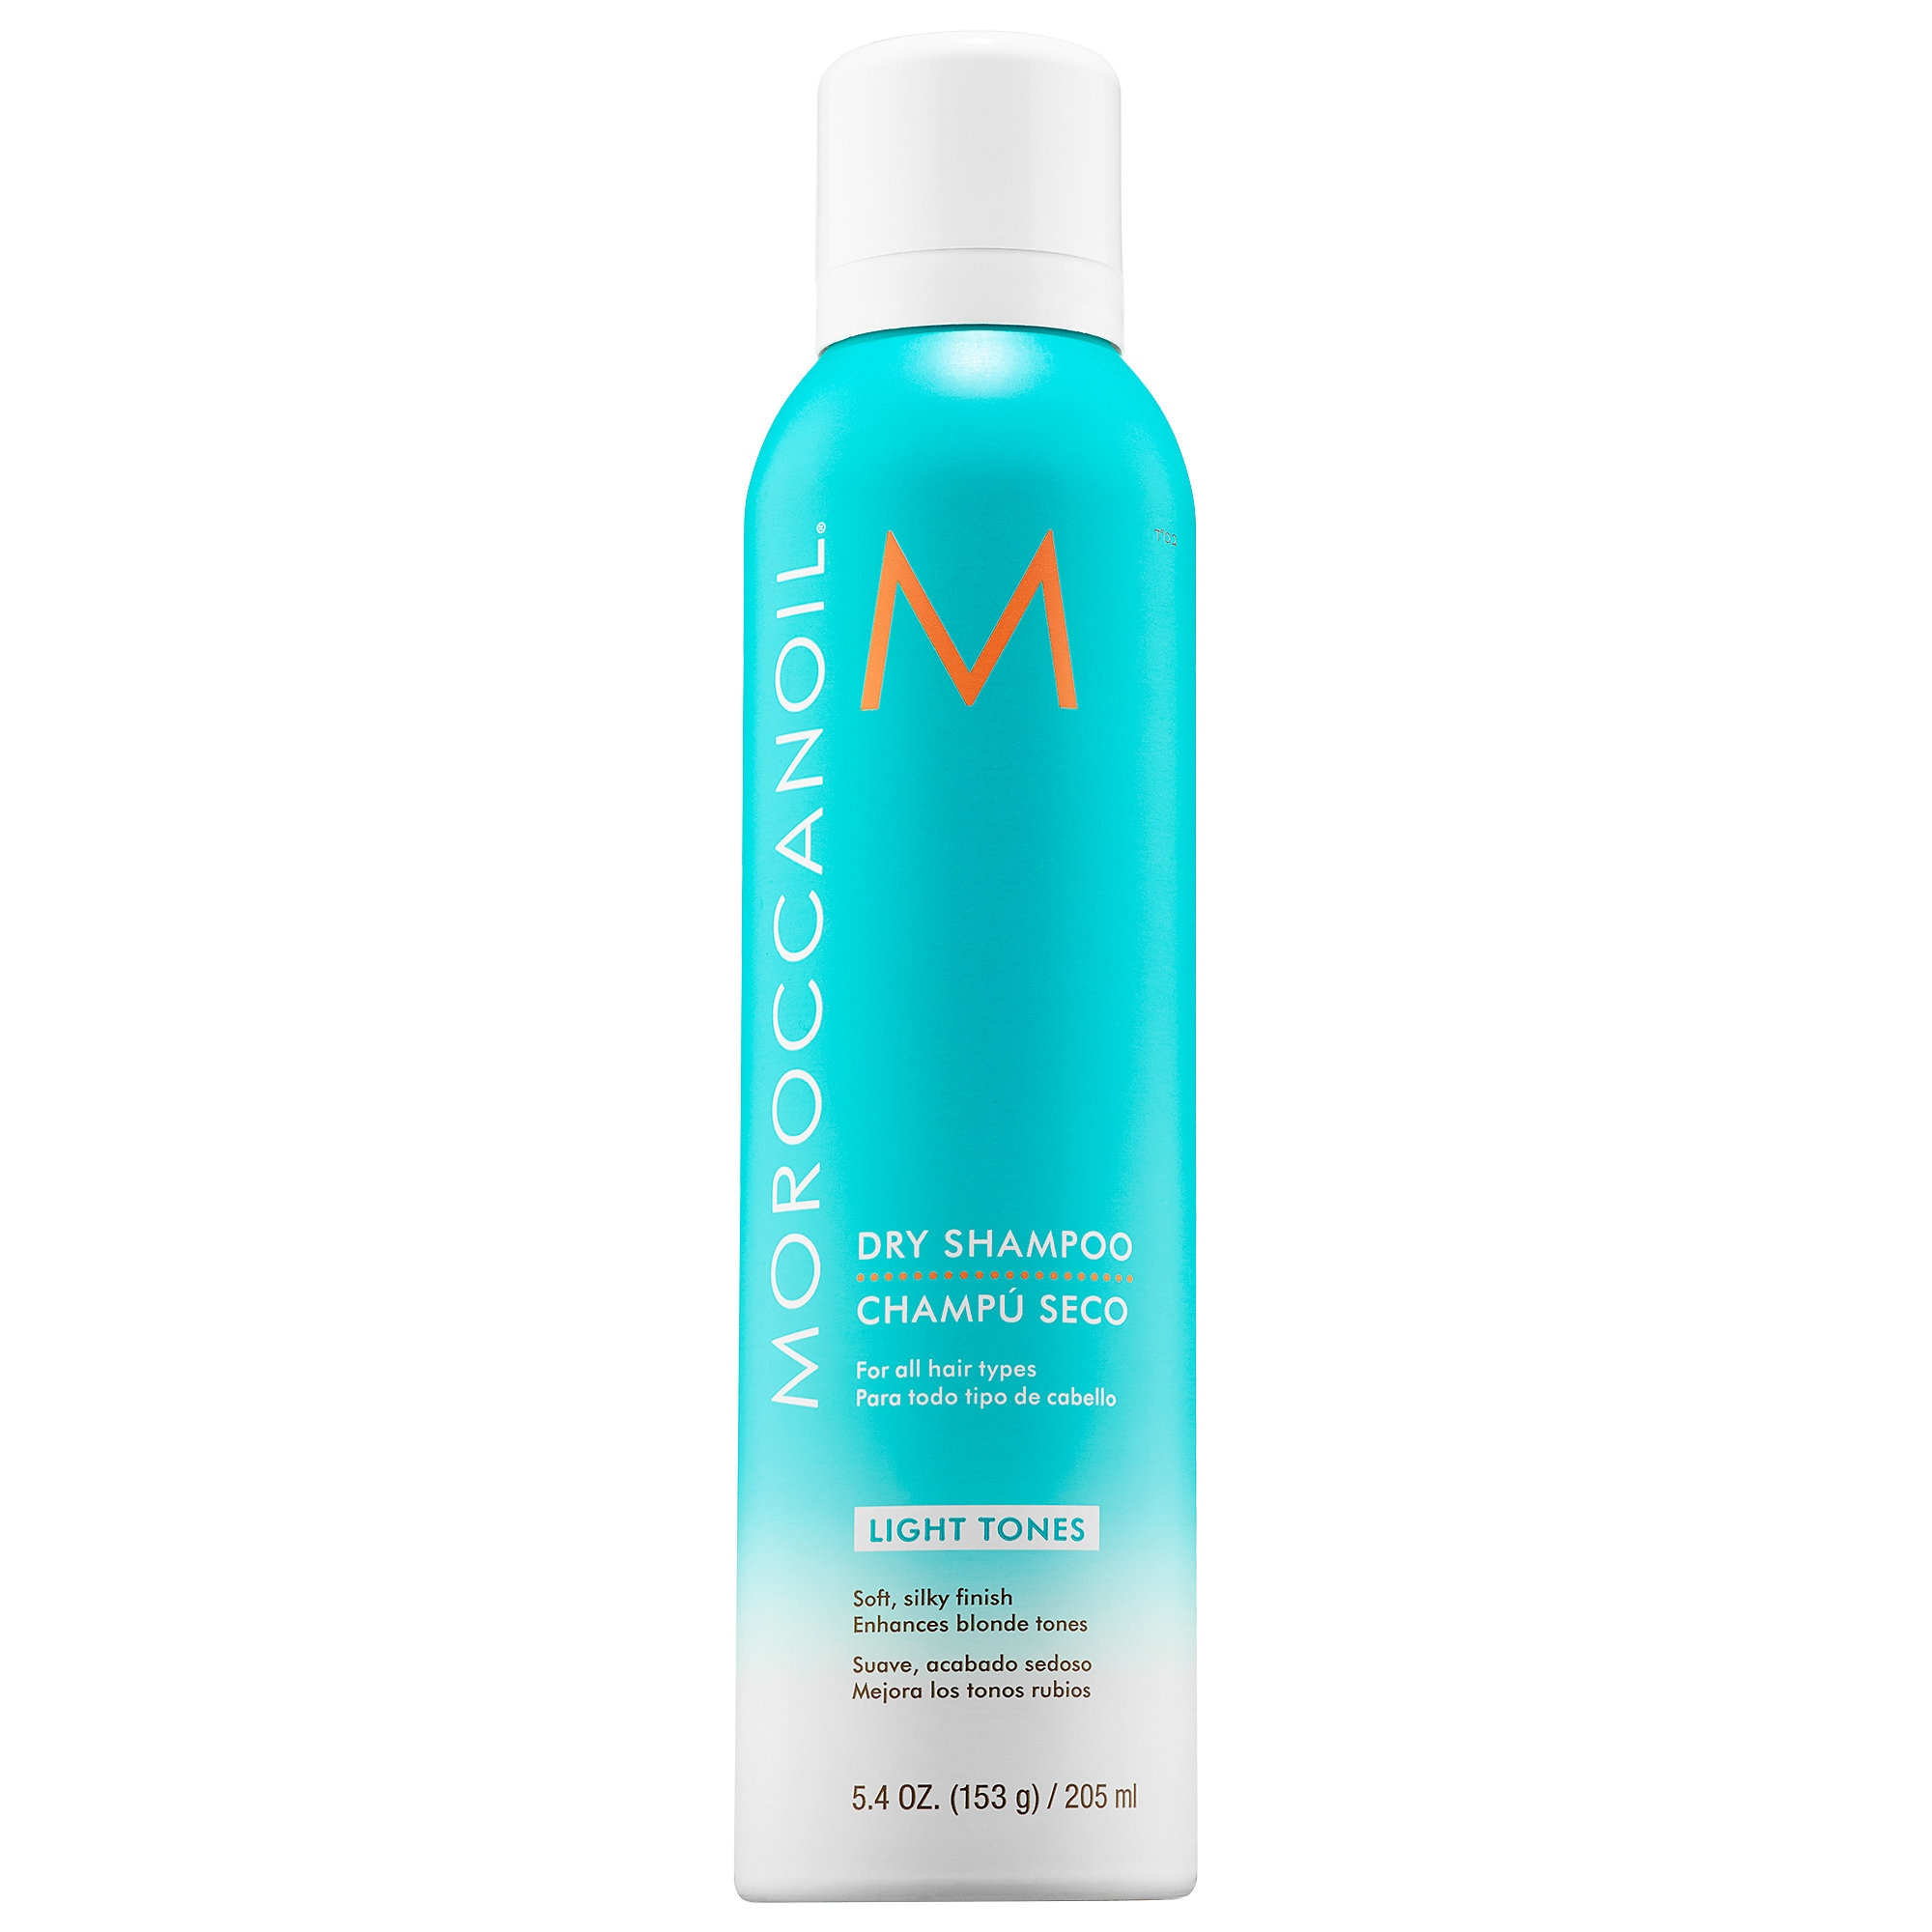 Dry Shampoo Light Tones - 5.4oz